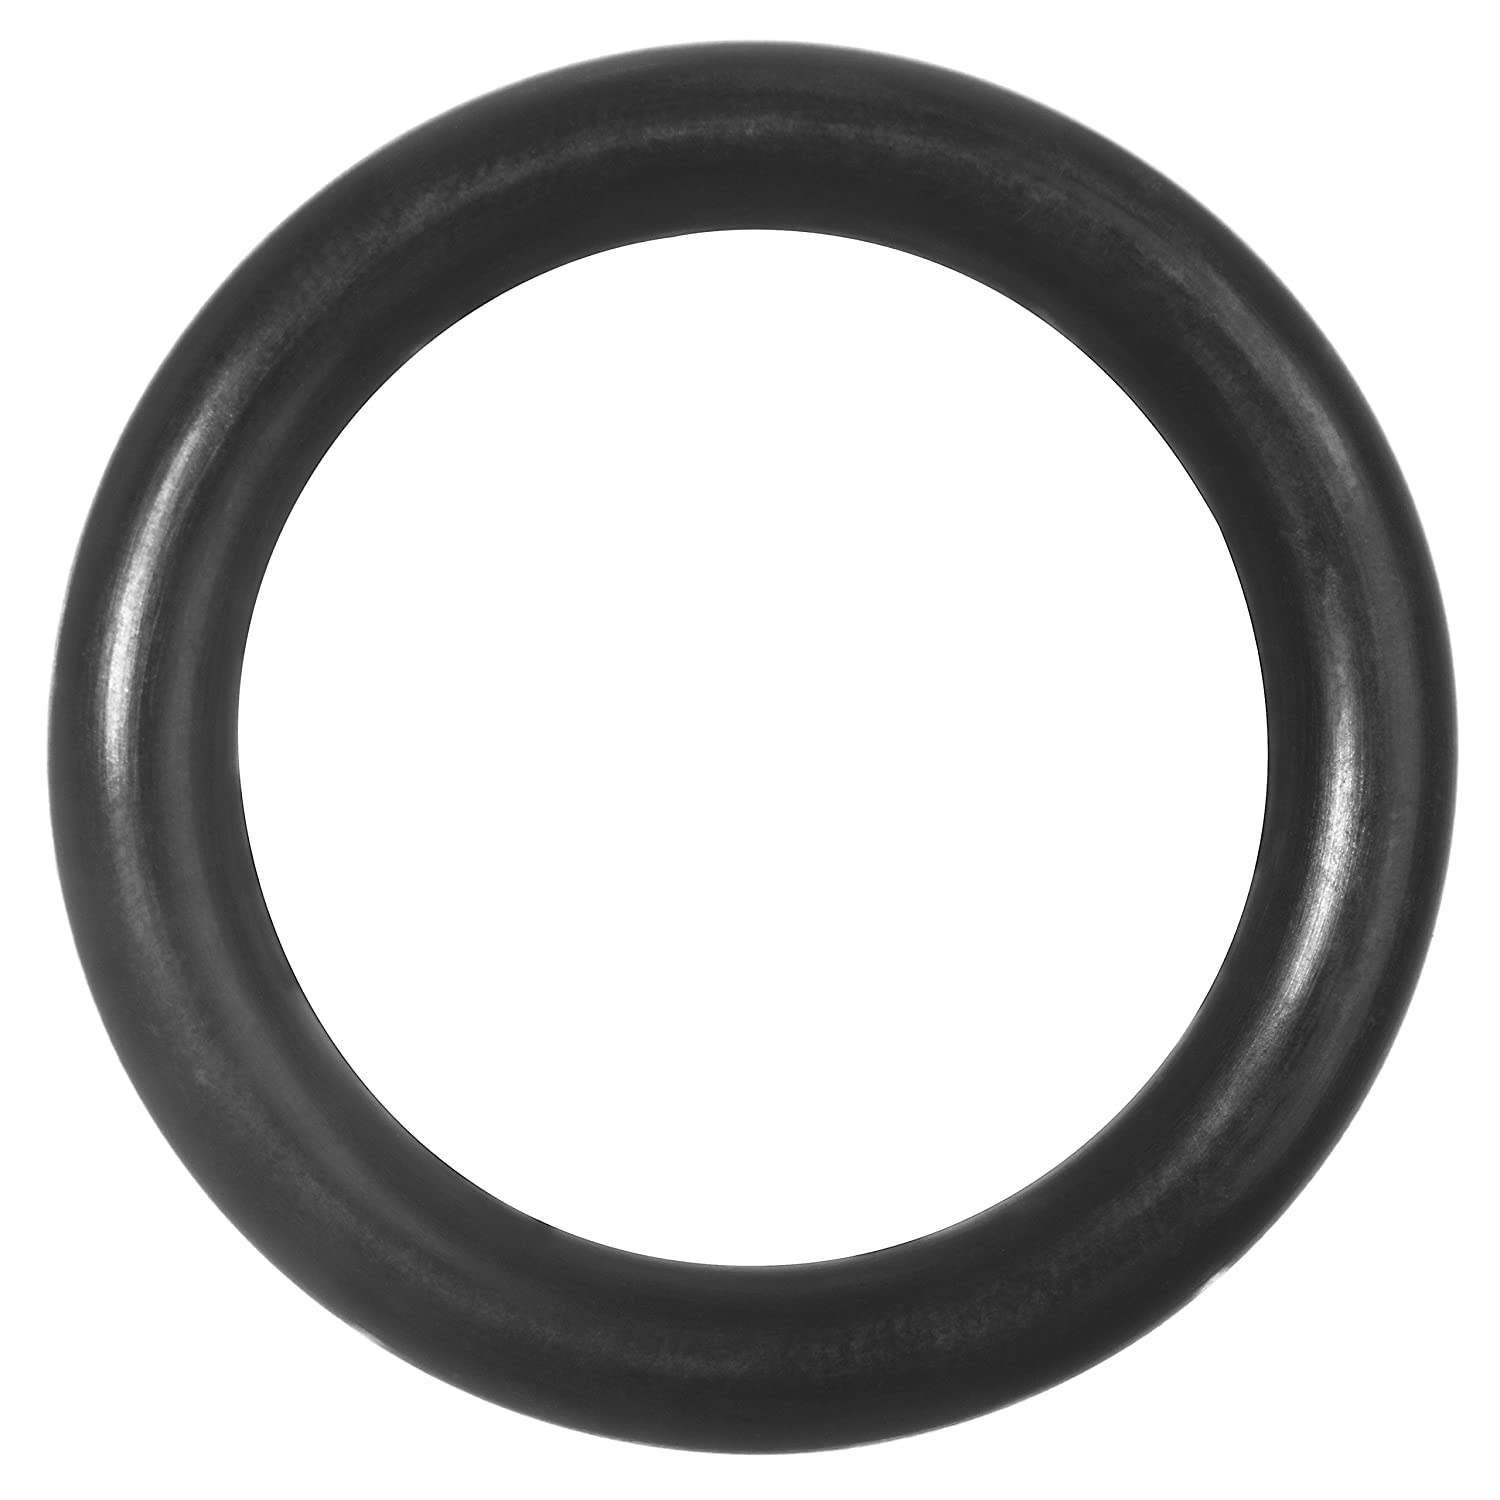 USA Sealing Inc Buna-N O-Ring-3mm Wide 101mm ID-Pack of 15